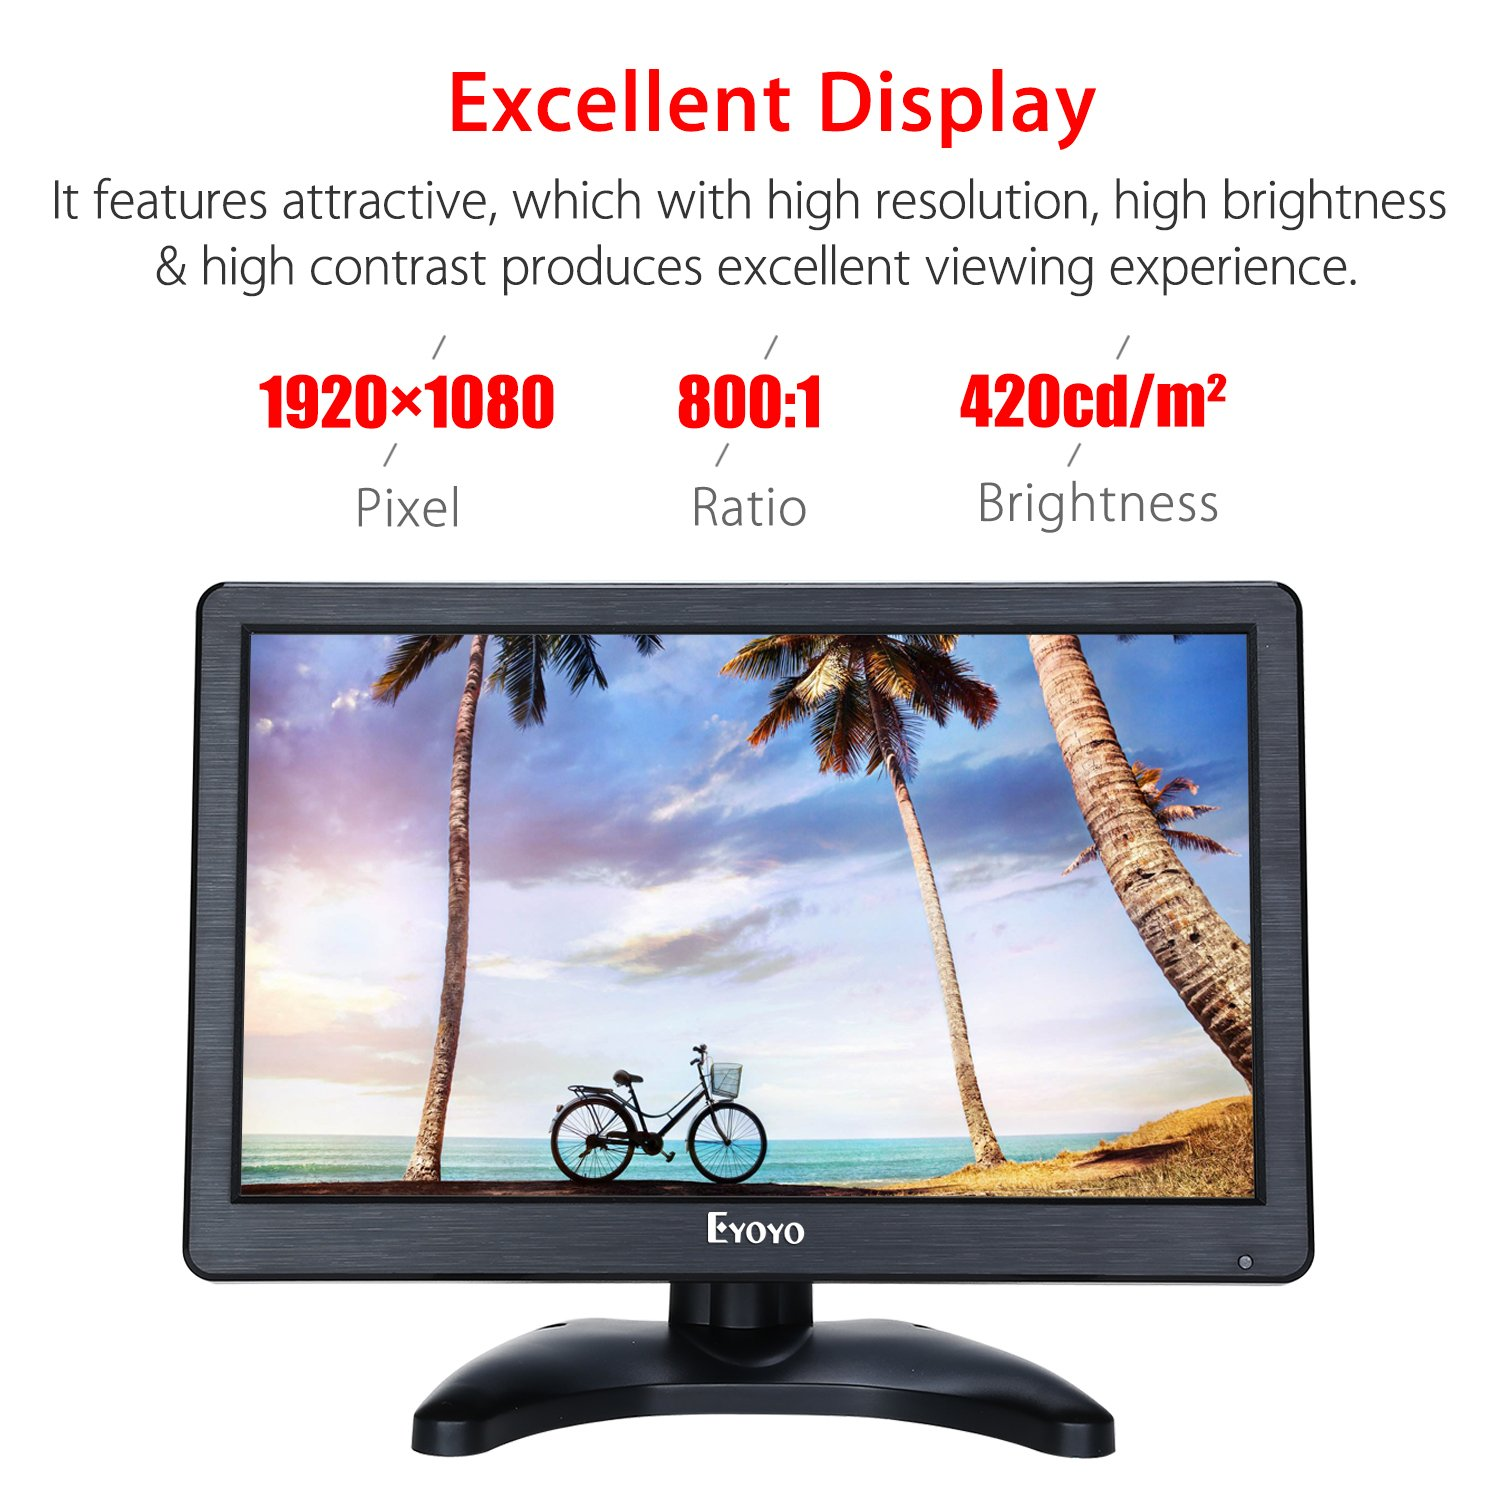 Eyoyo 12 inch HD 1920x1080 IPS LCD HDMI Monitor Screen Input Audio Video Display with BNC Cable for PC Computer Camera DVD Security CCTV DVR Home Office Surveillance by Eyoyo (Image #1)